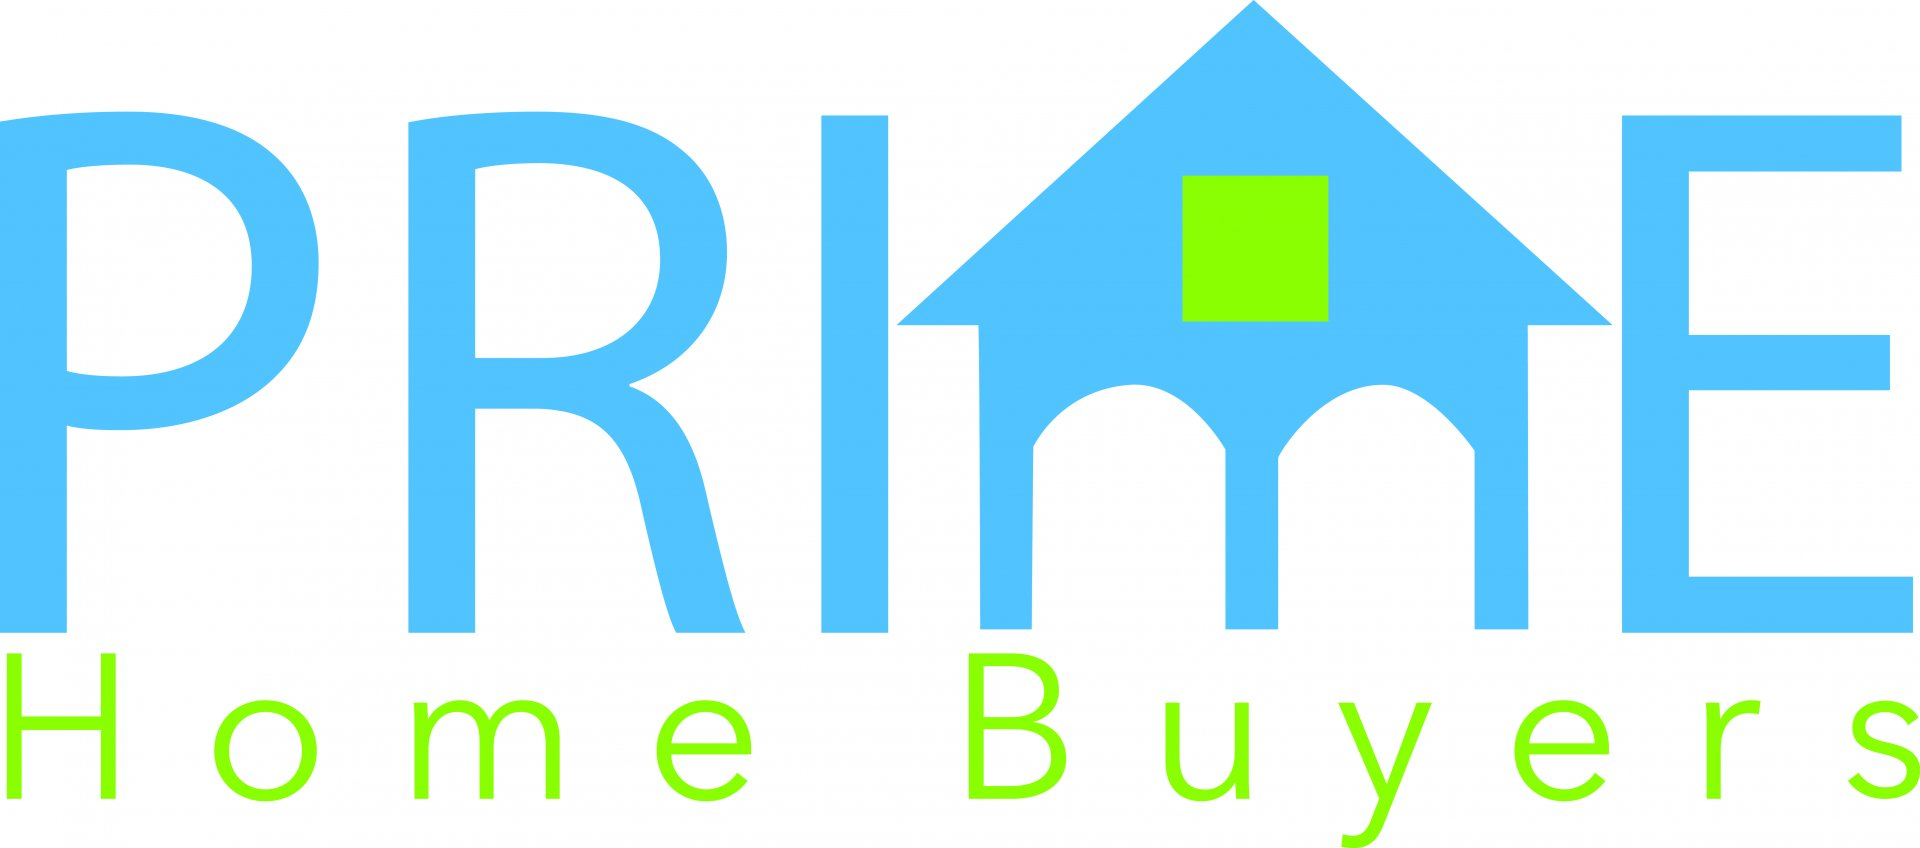 Seller Leads Site logo